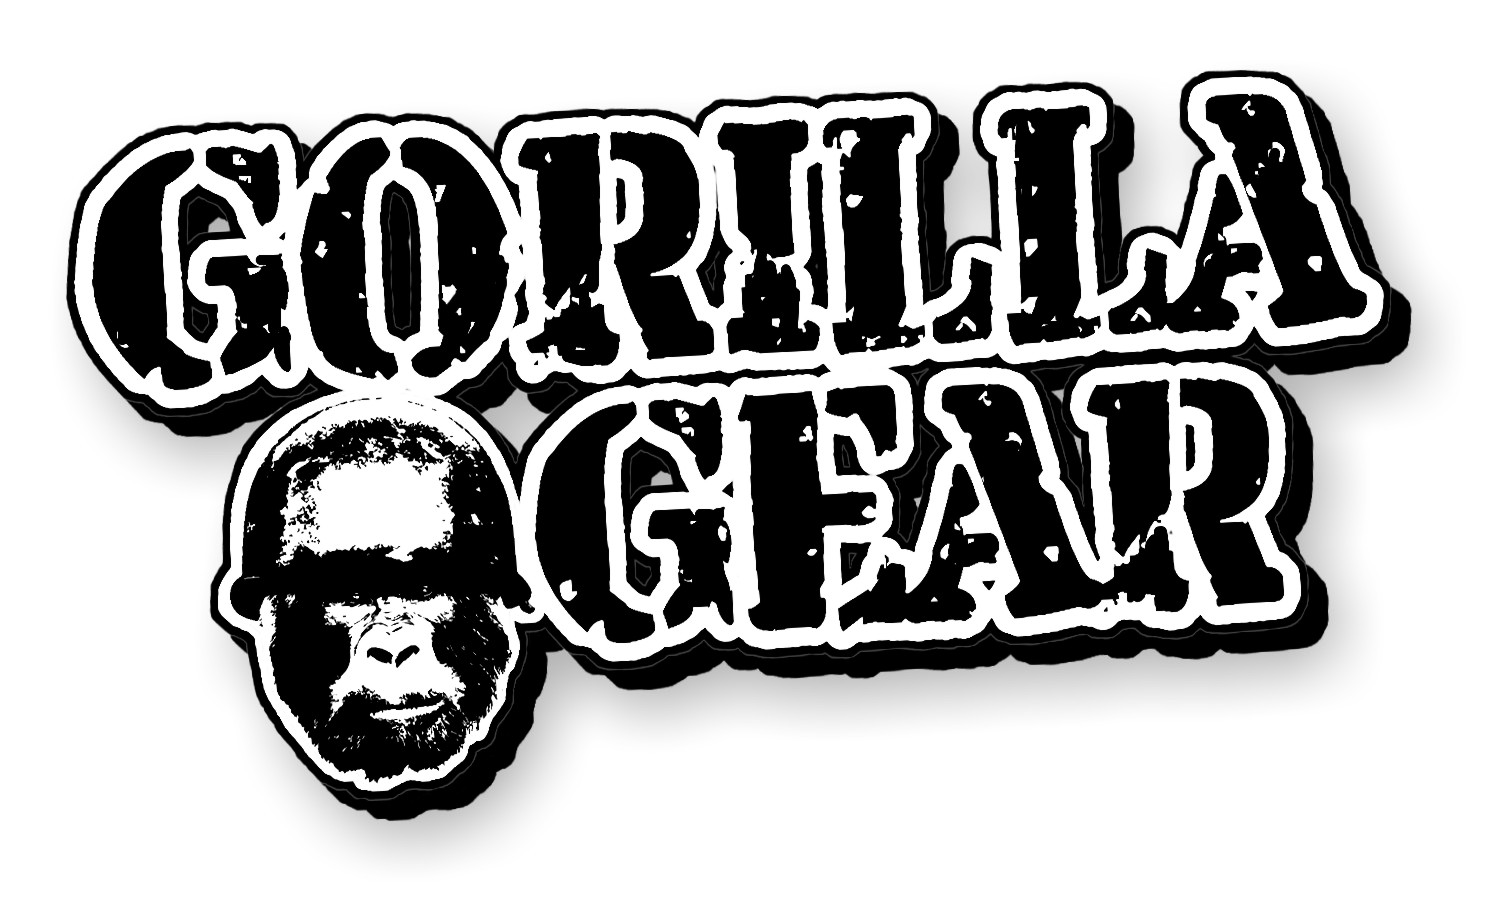 Official Gorilla Army gear